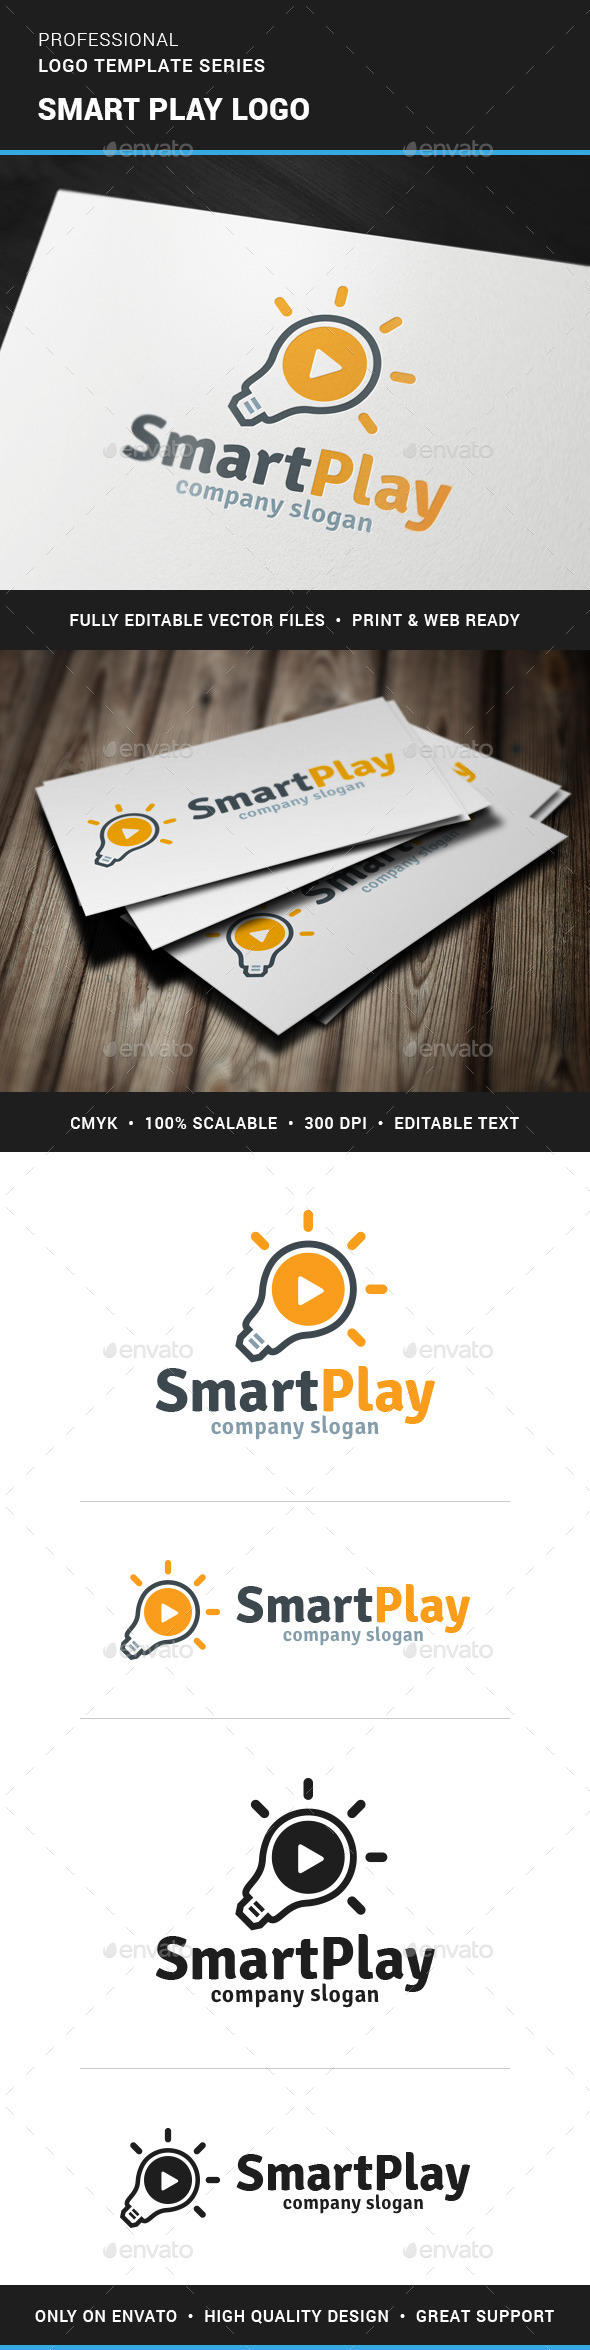 GraphicRiver Smart Play Logo Template 11606726